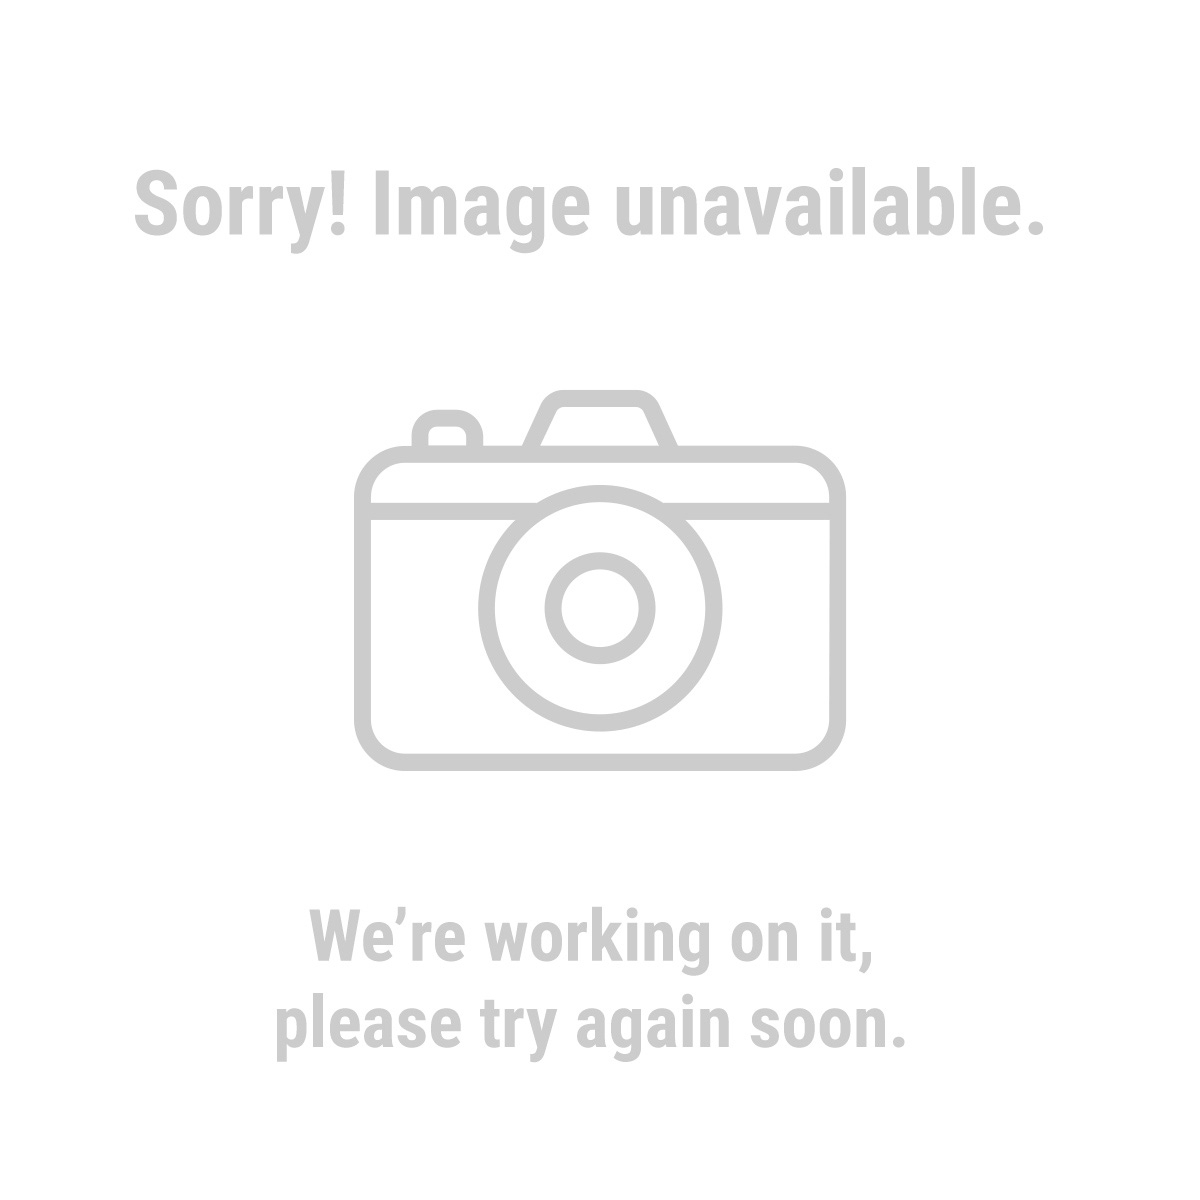 Pacific Hydrostar® 68372 200 GPH Miniature Submersible Fountain Pump